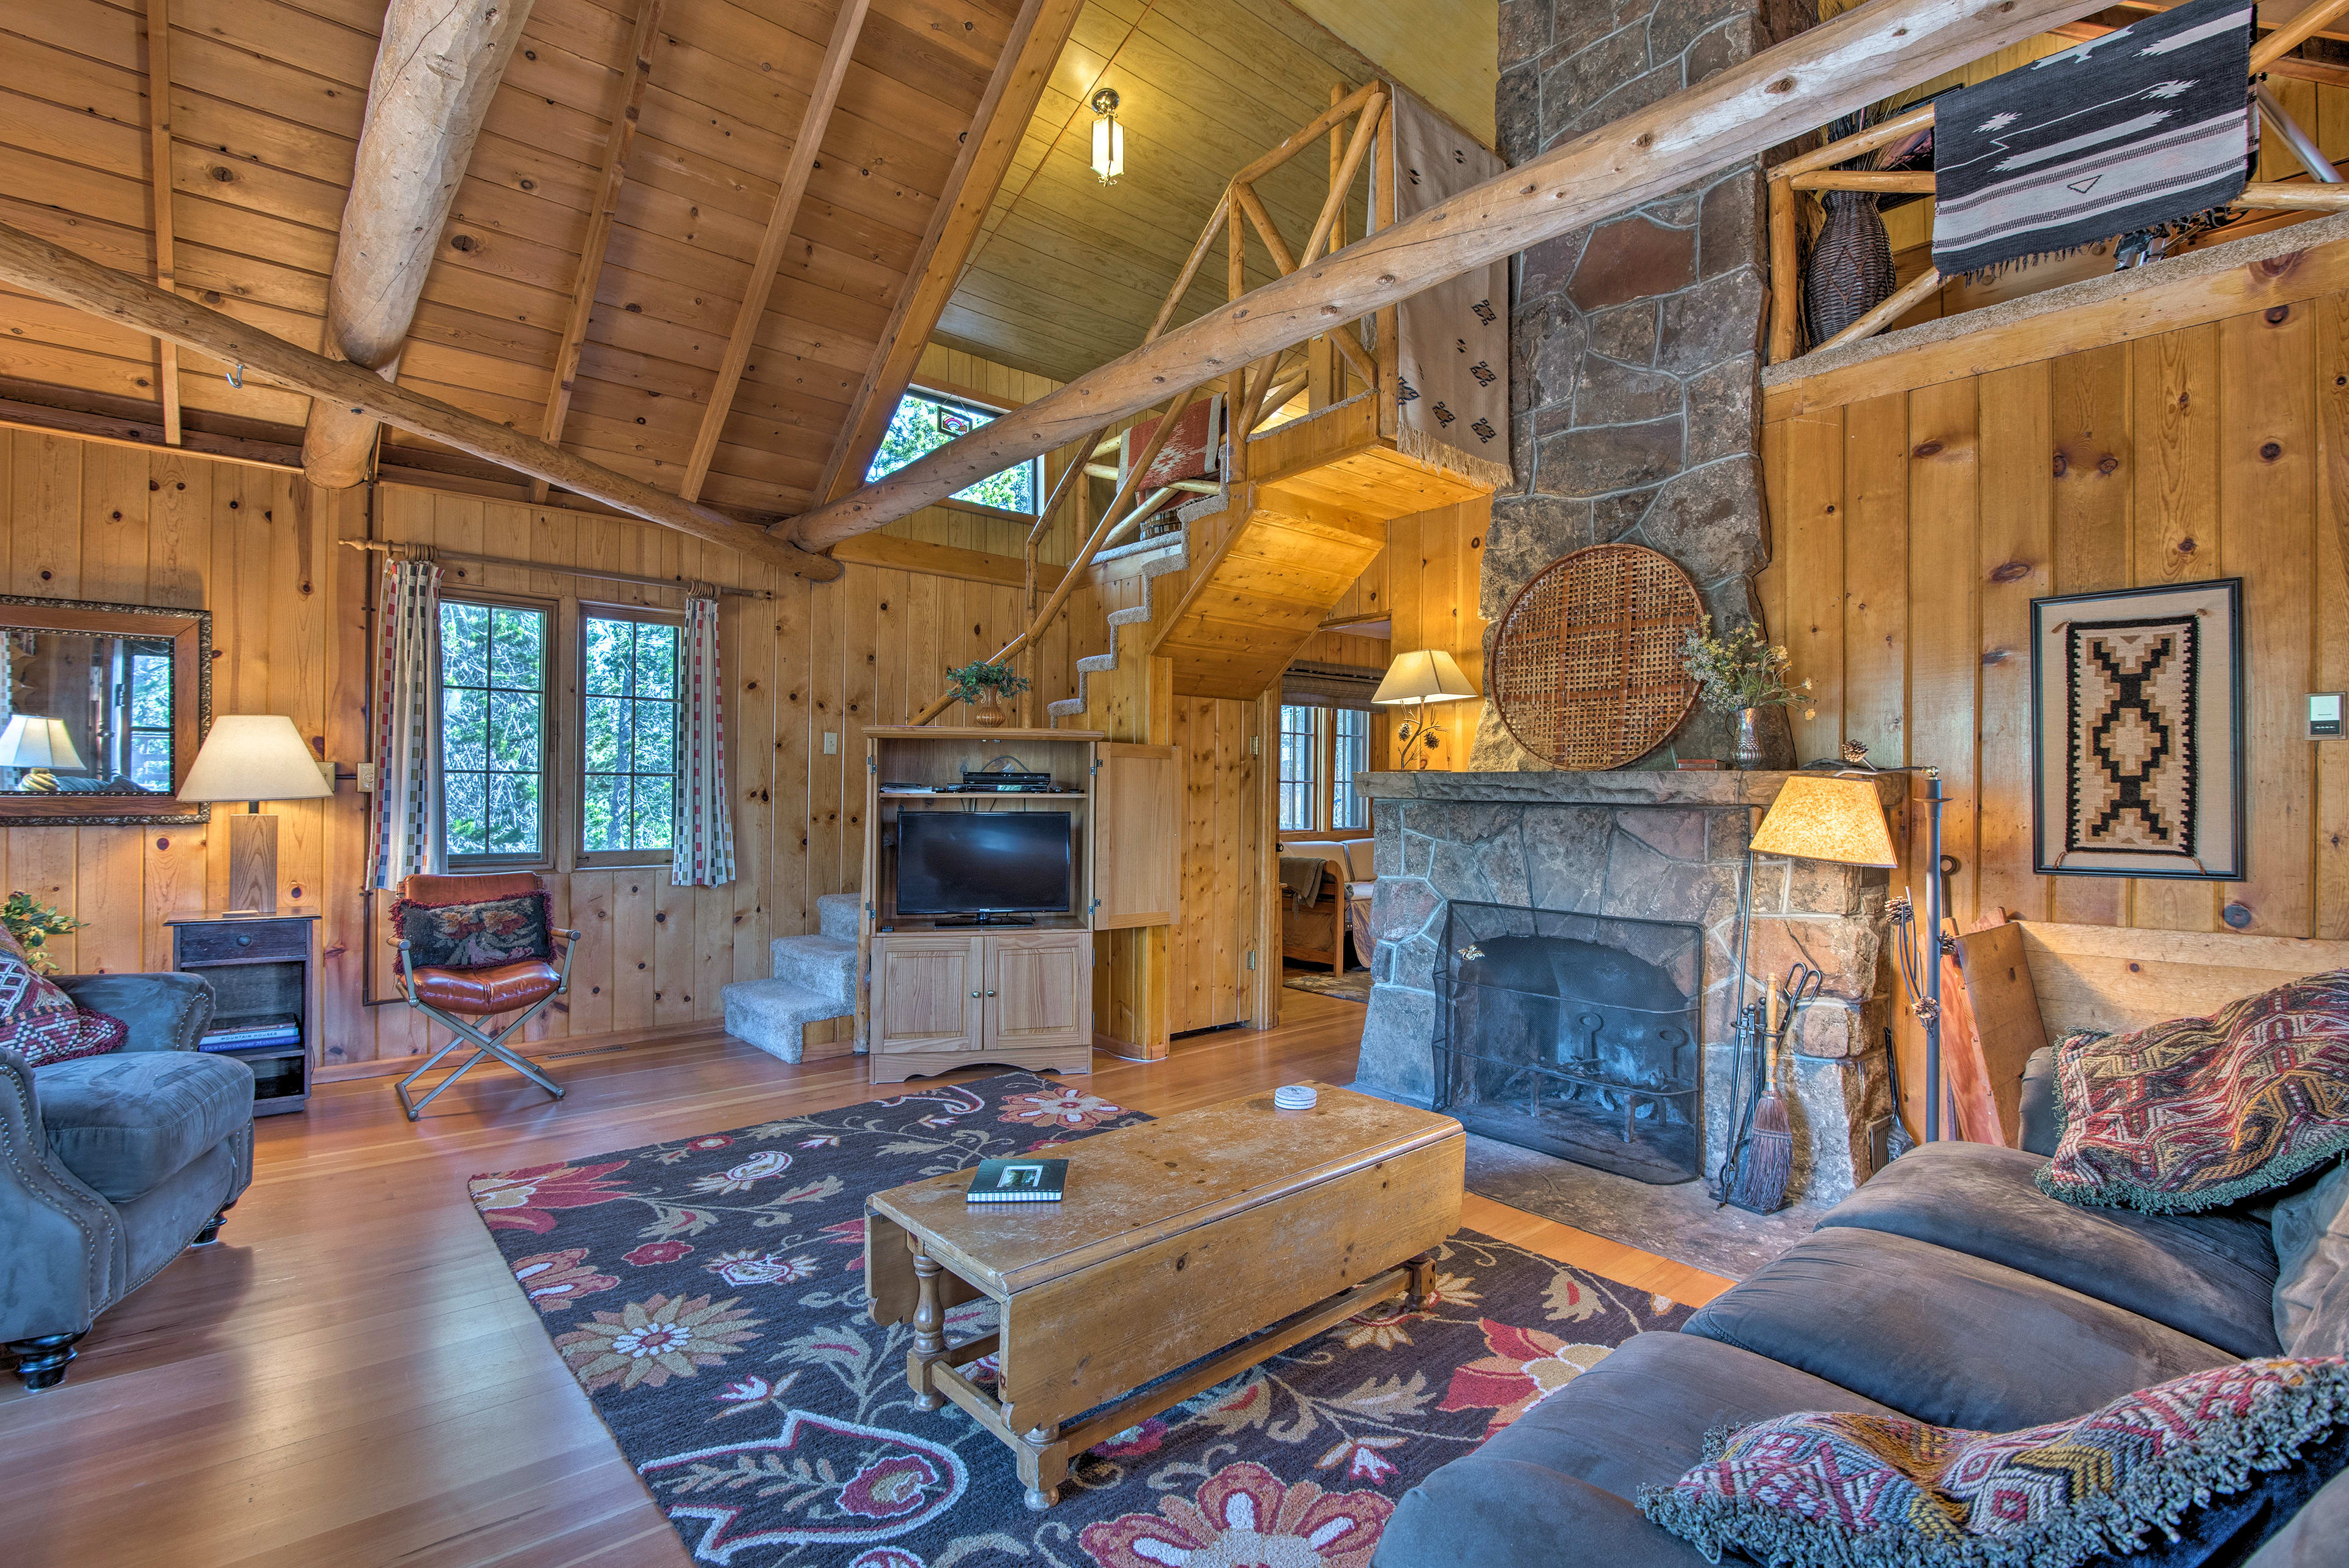 This spacious home boasts a warm cabin ambiance.